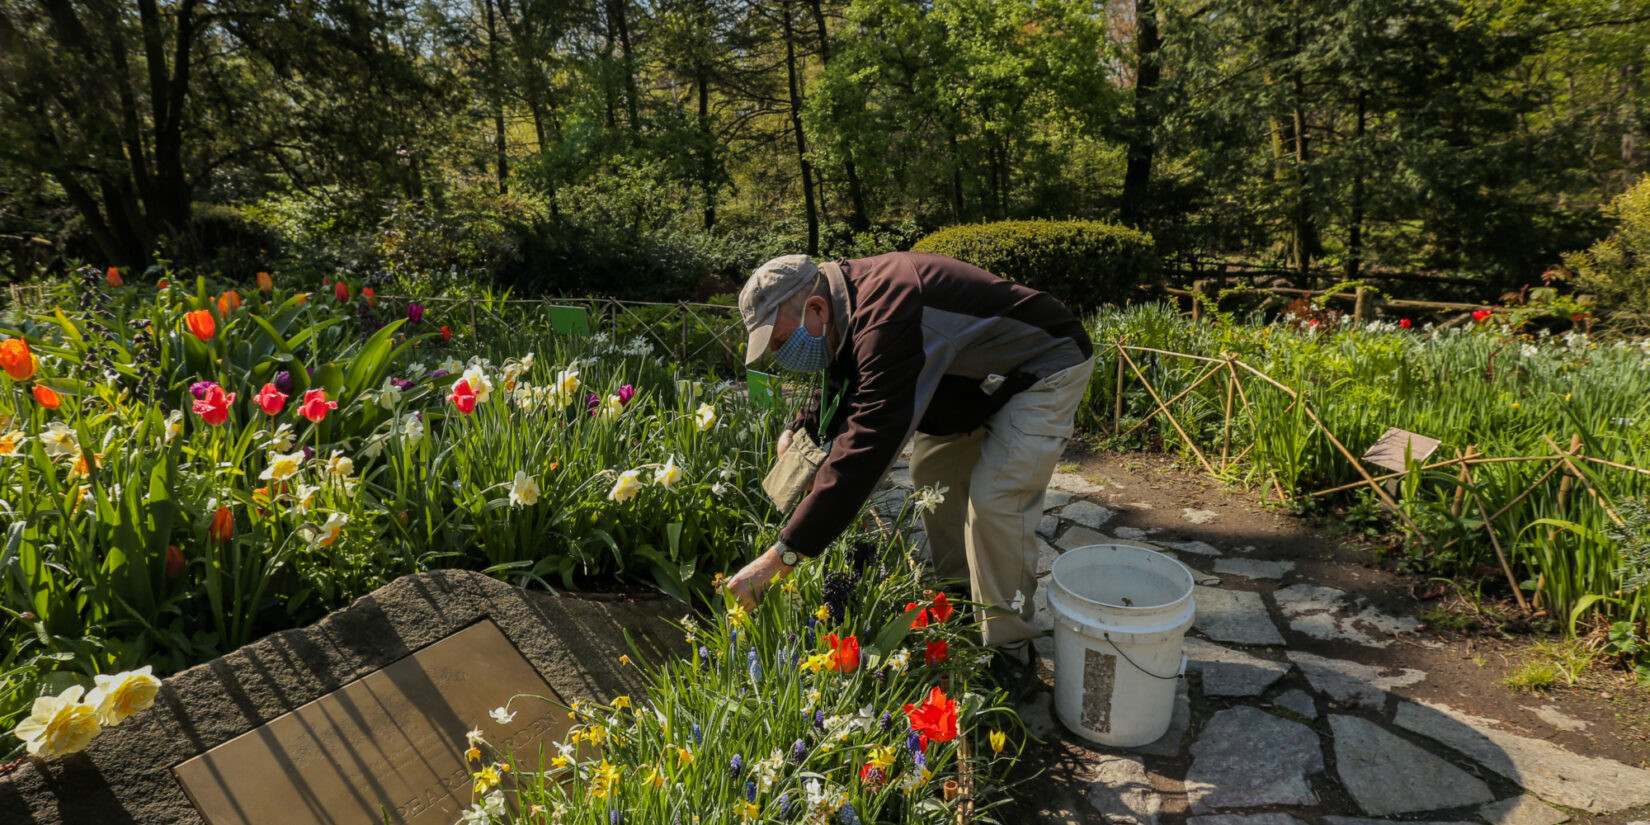 The staff member stoops to tend the blooms in a section of the Shakespeare Garden in spring.